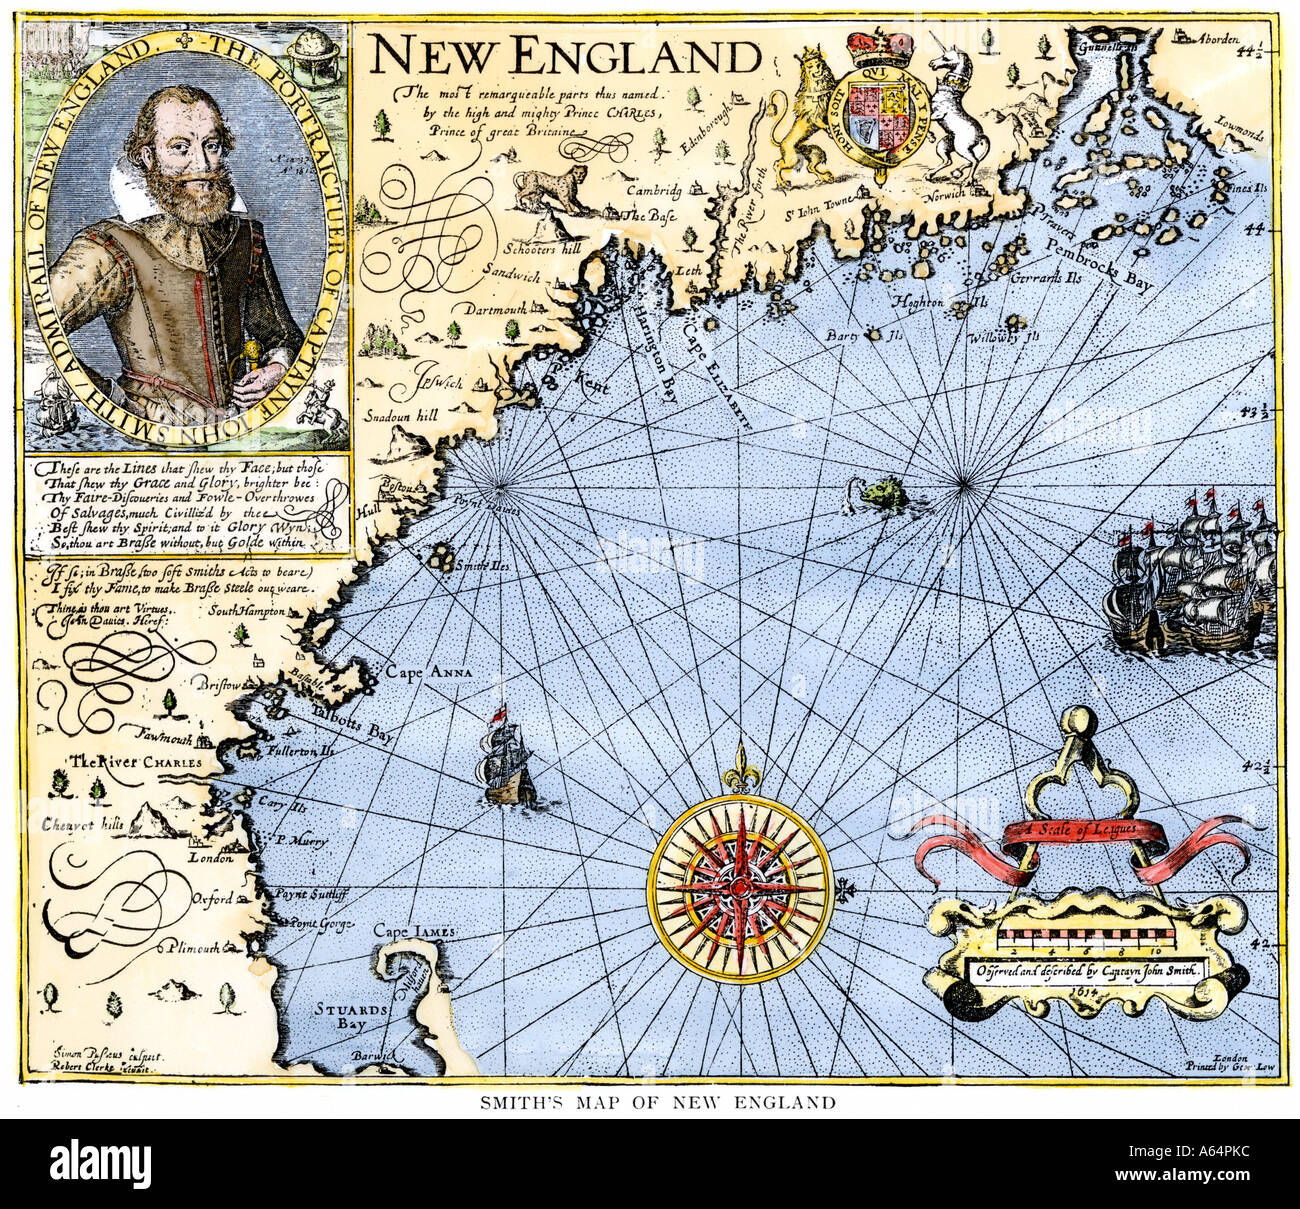 John smith map of new england with inset portrait circa 1620 stock john smith map of new england with inset portrait circa 1620 publicscrutiny Choice Image